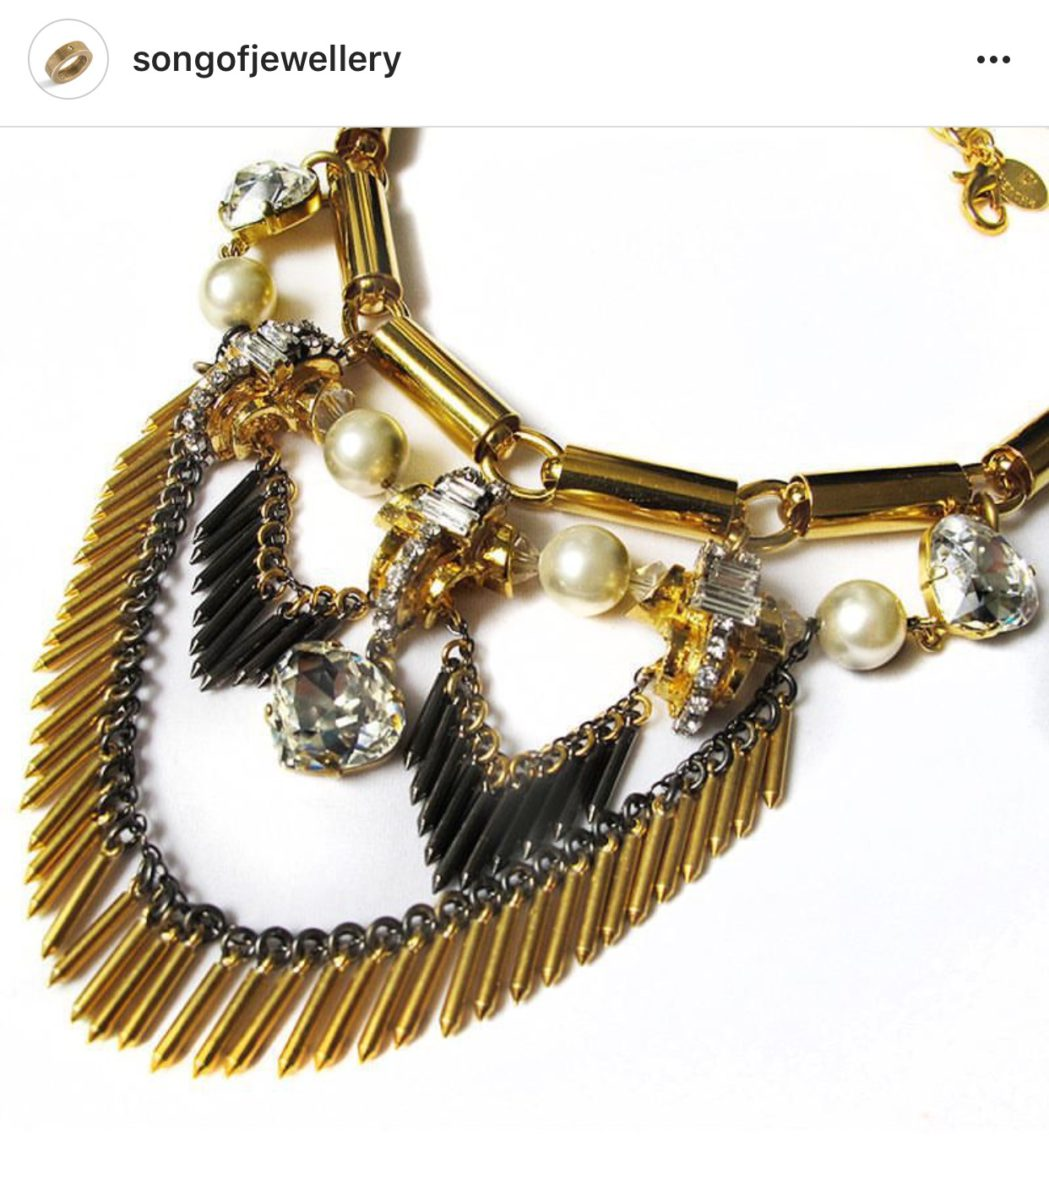 Jewellery with good background